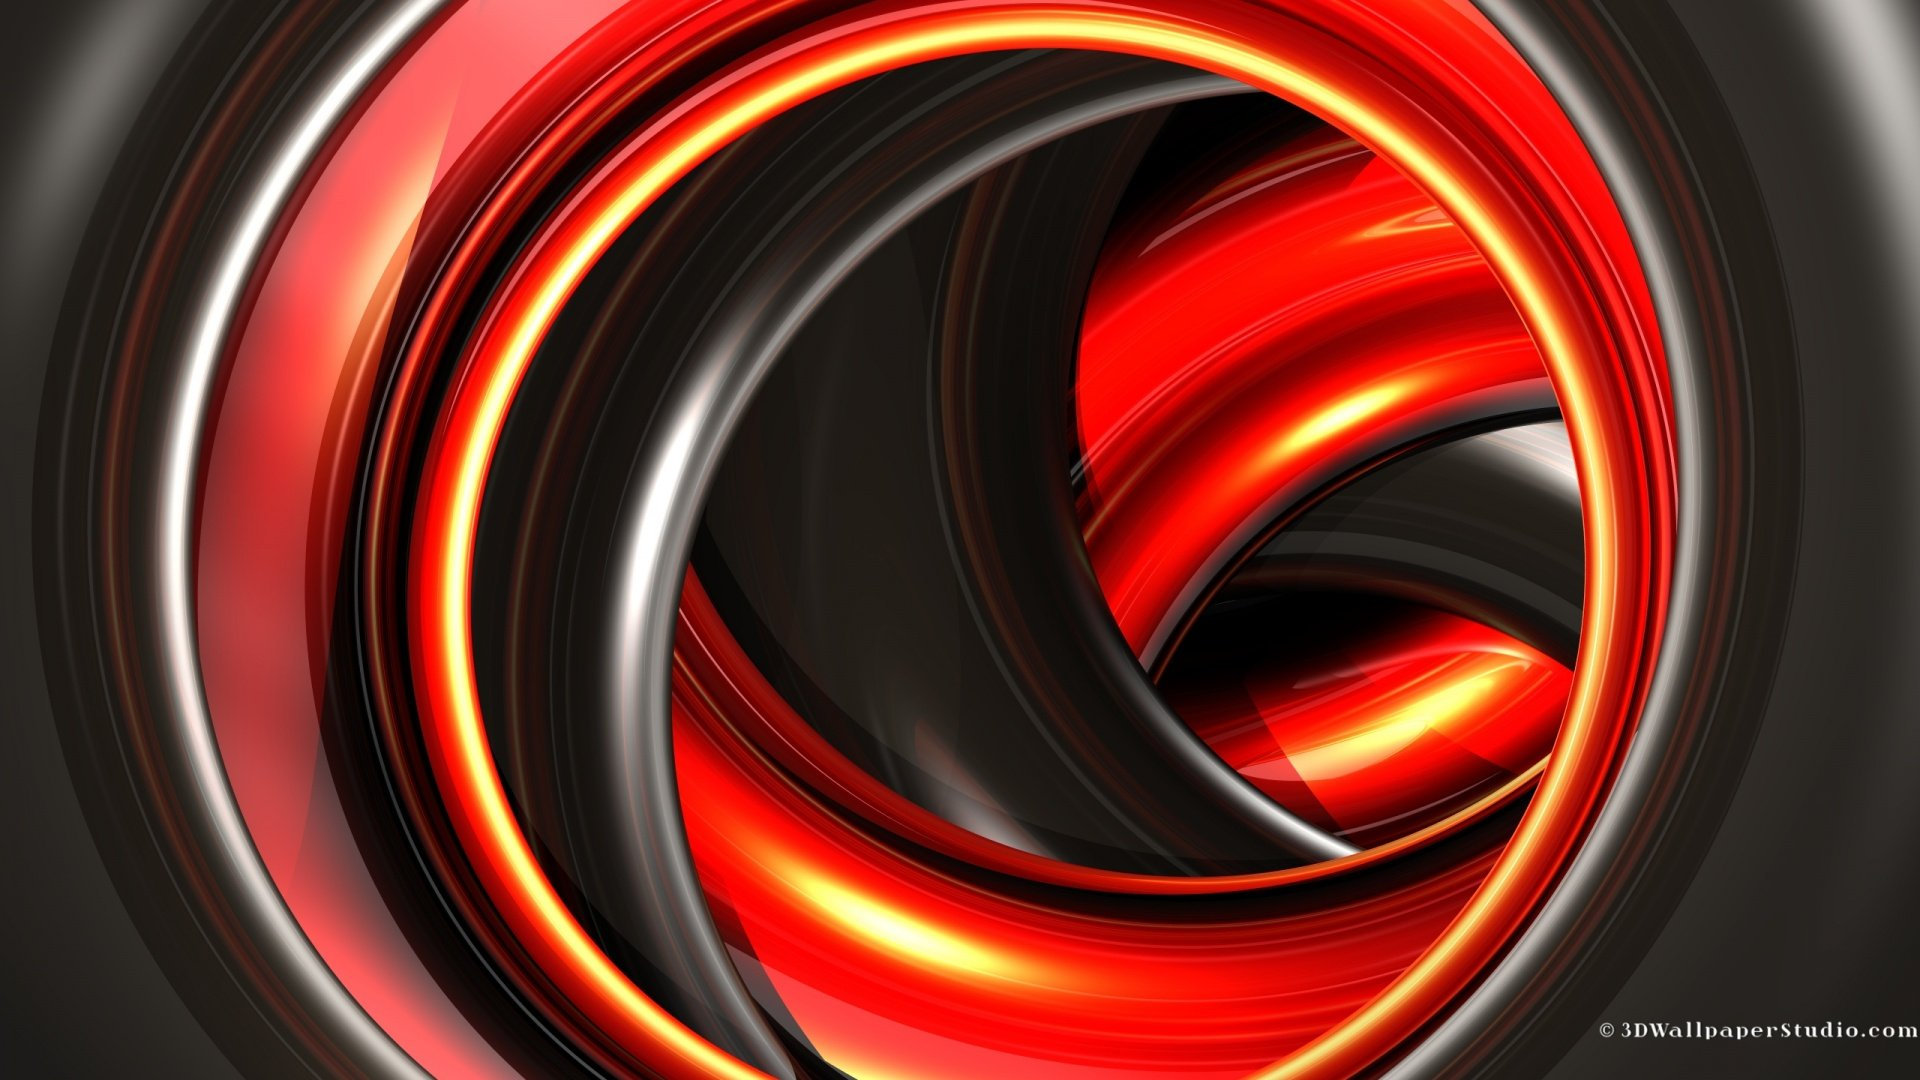 Black and Red Wallpaper 1920x1080 - WallpaperSafari